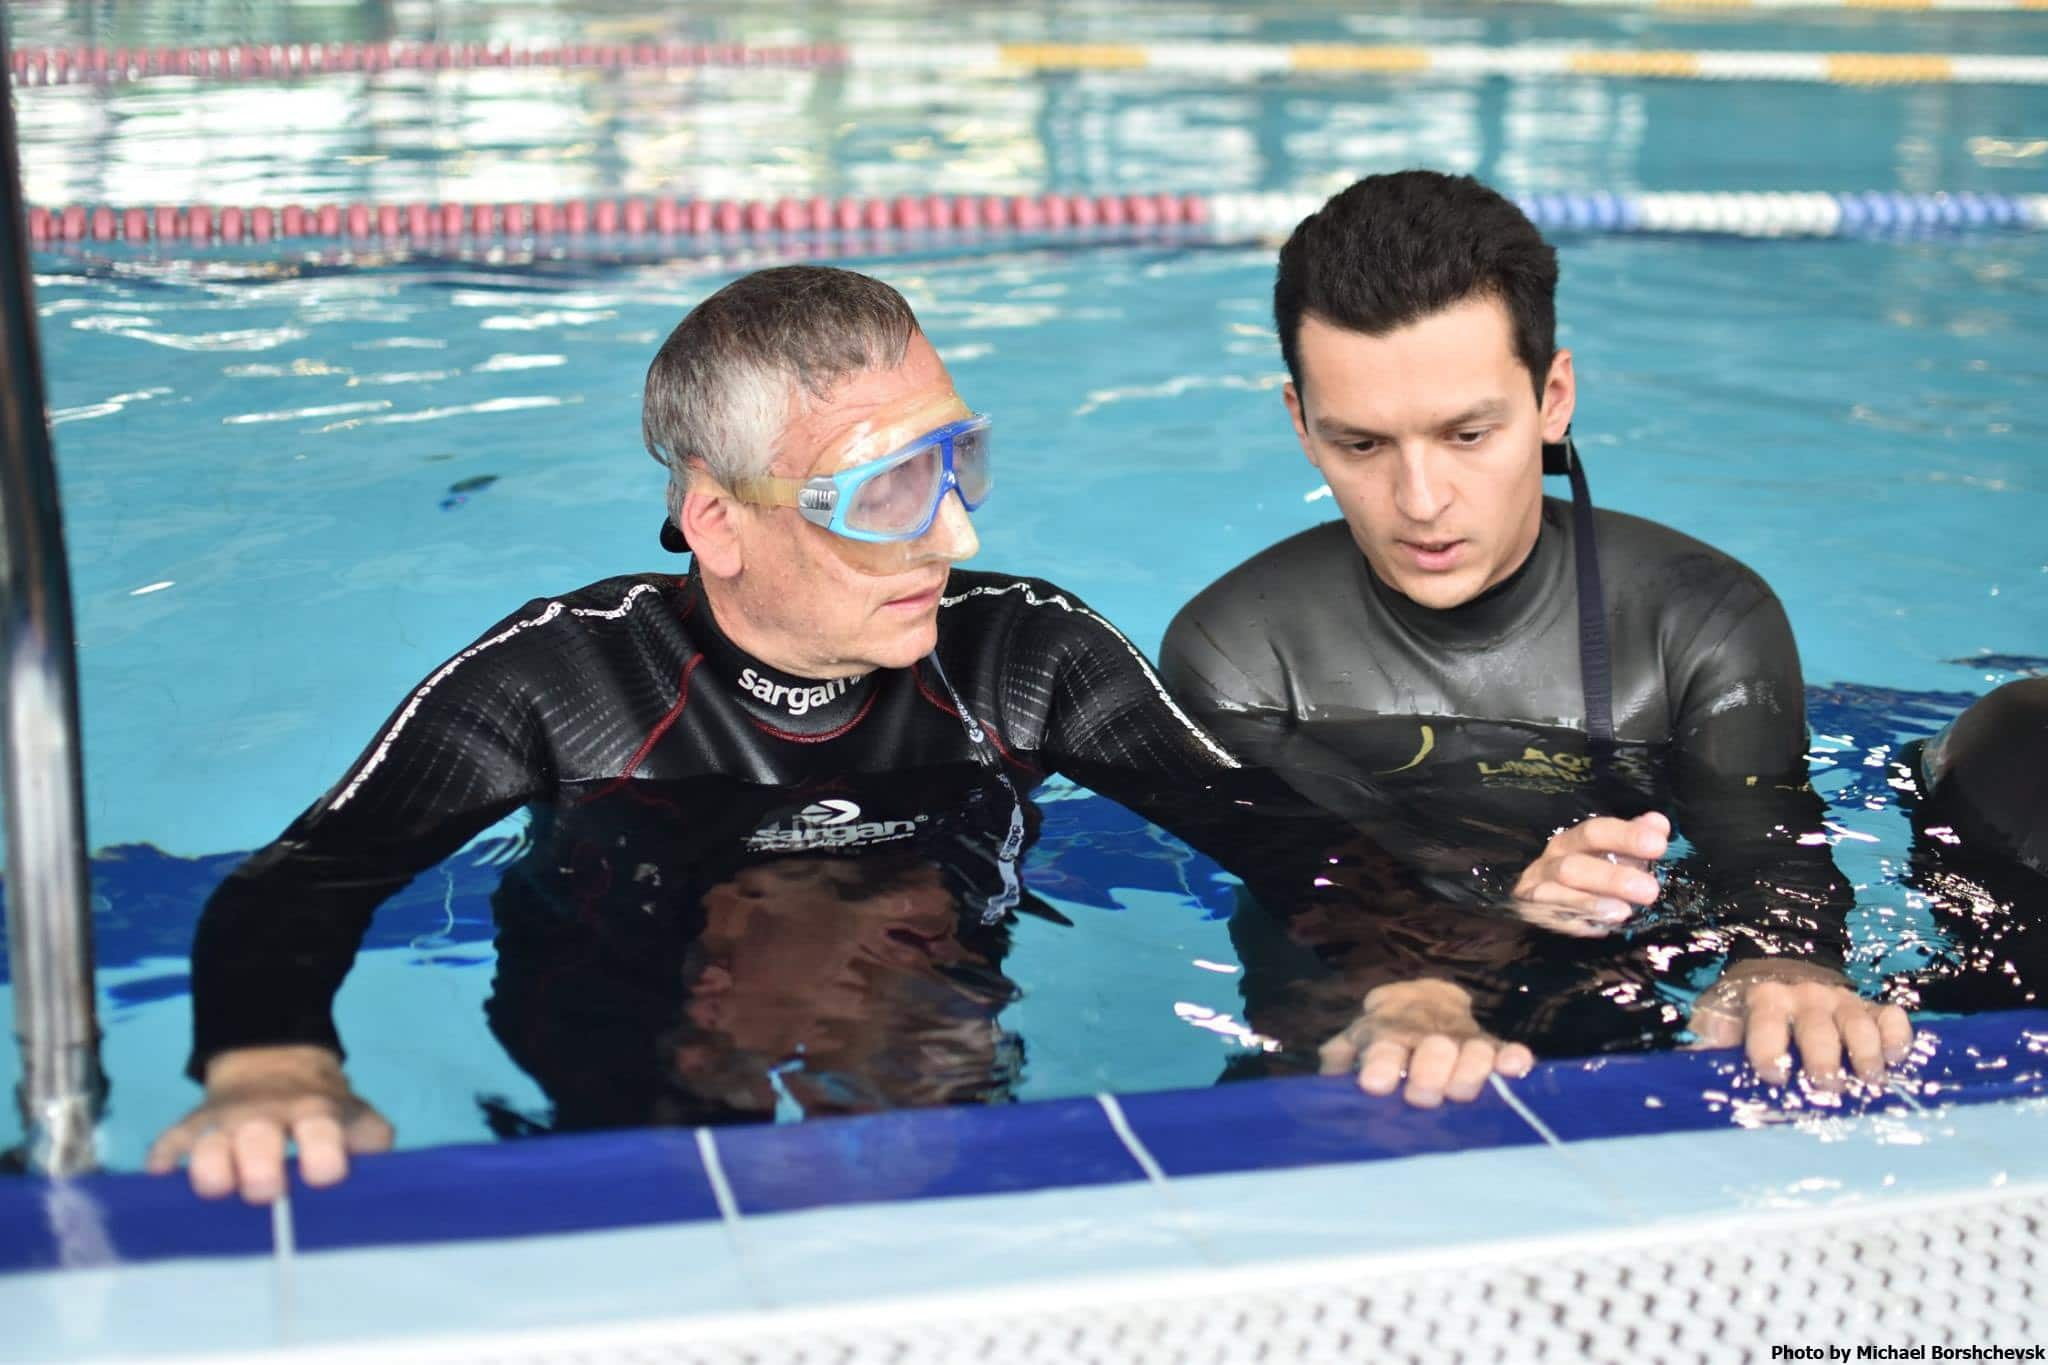 AIDA Develops Methods To Teach Freediving To Visually Impaired Divers